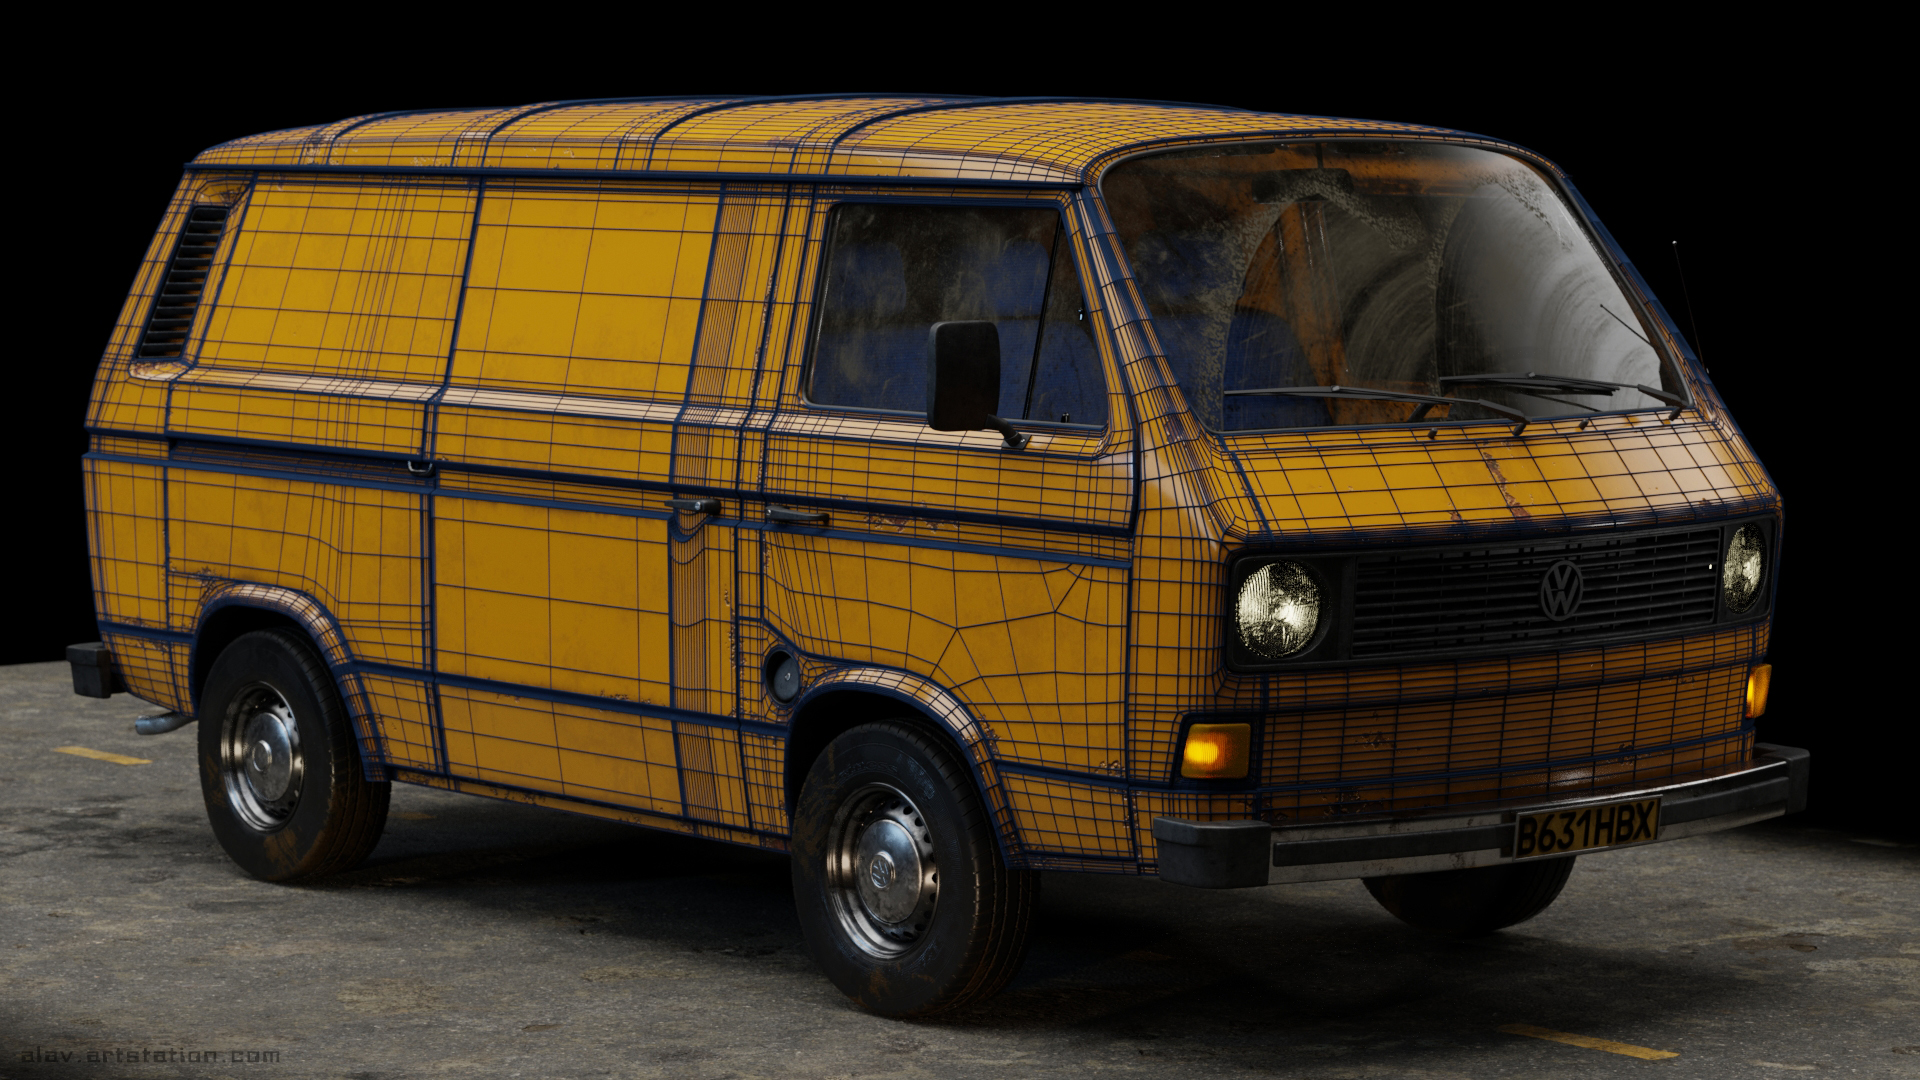 VW TRANSPORTER T3 (Car Render Challange 2018)